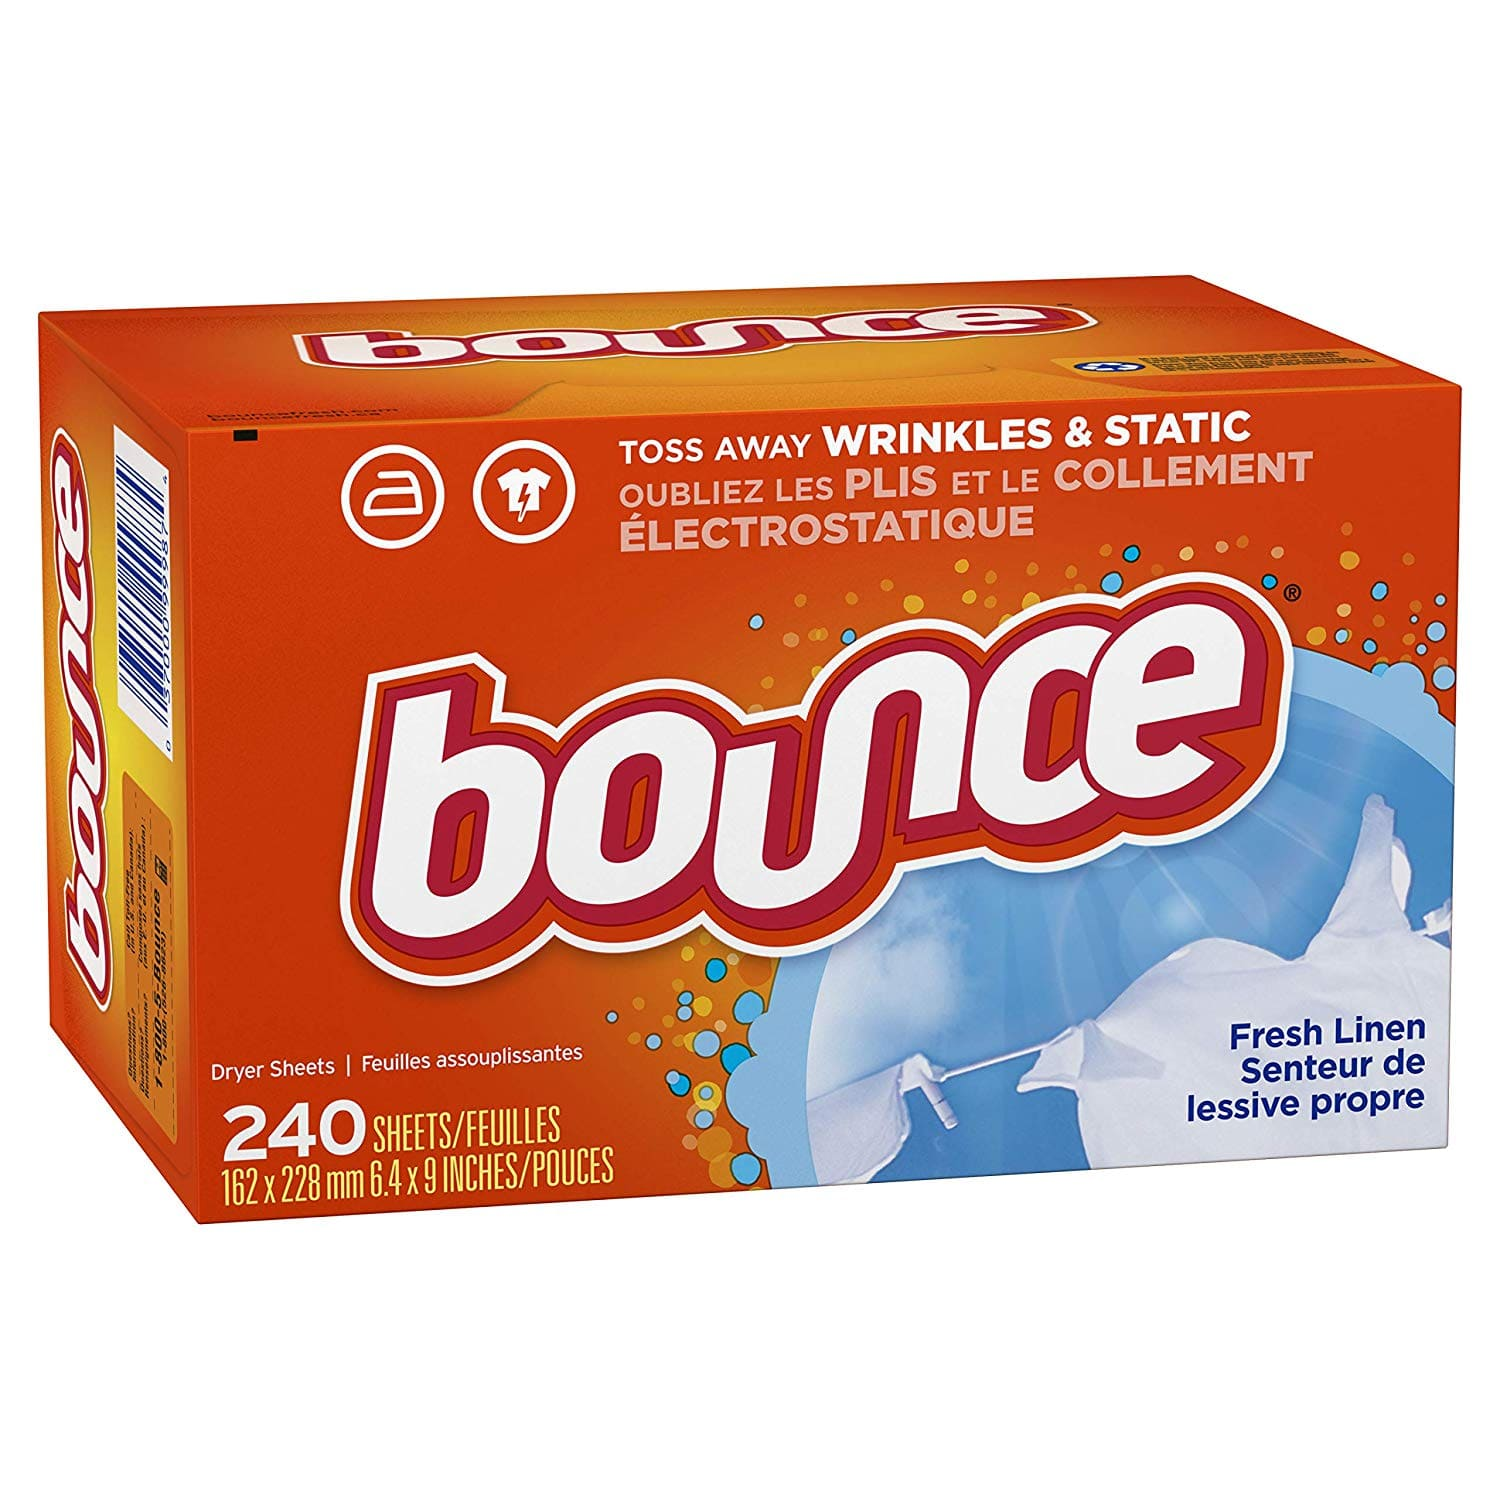 240-Count Bounce Fabric Softener Dryer Sheets (Fresh Linen/Free & Gentle) $3.74 (or less w/ 15% S&S) + Free S&H